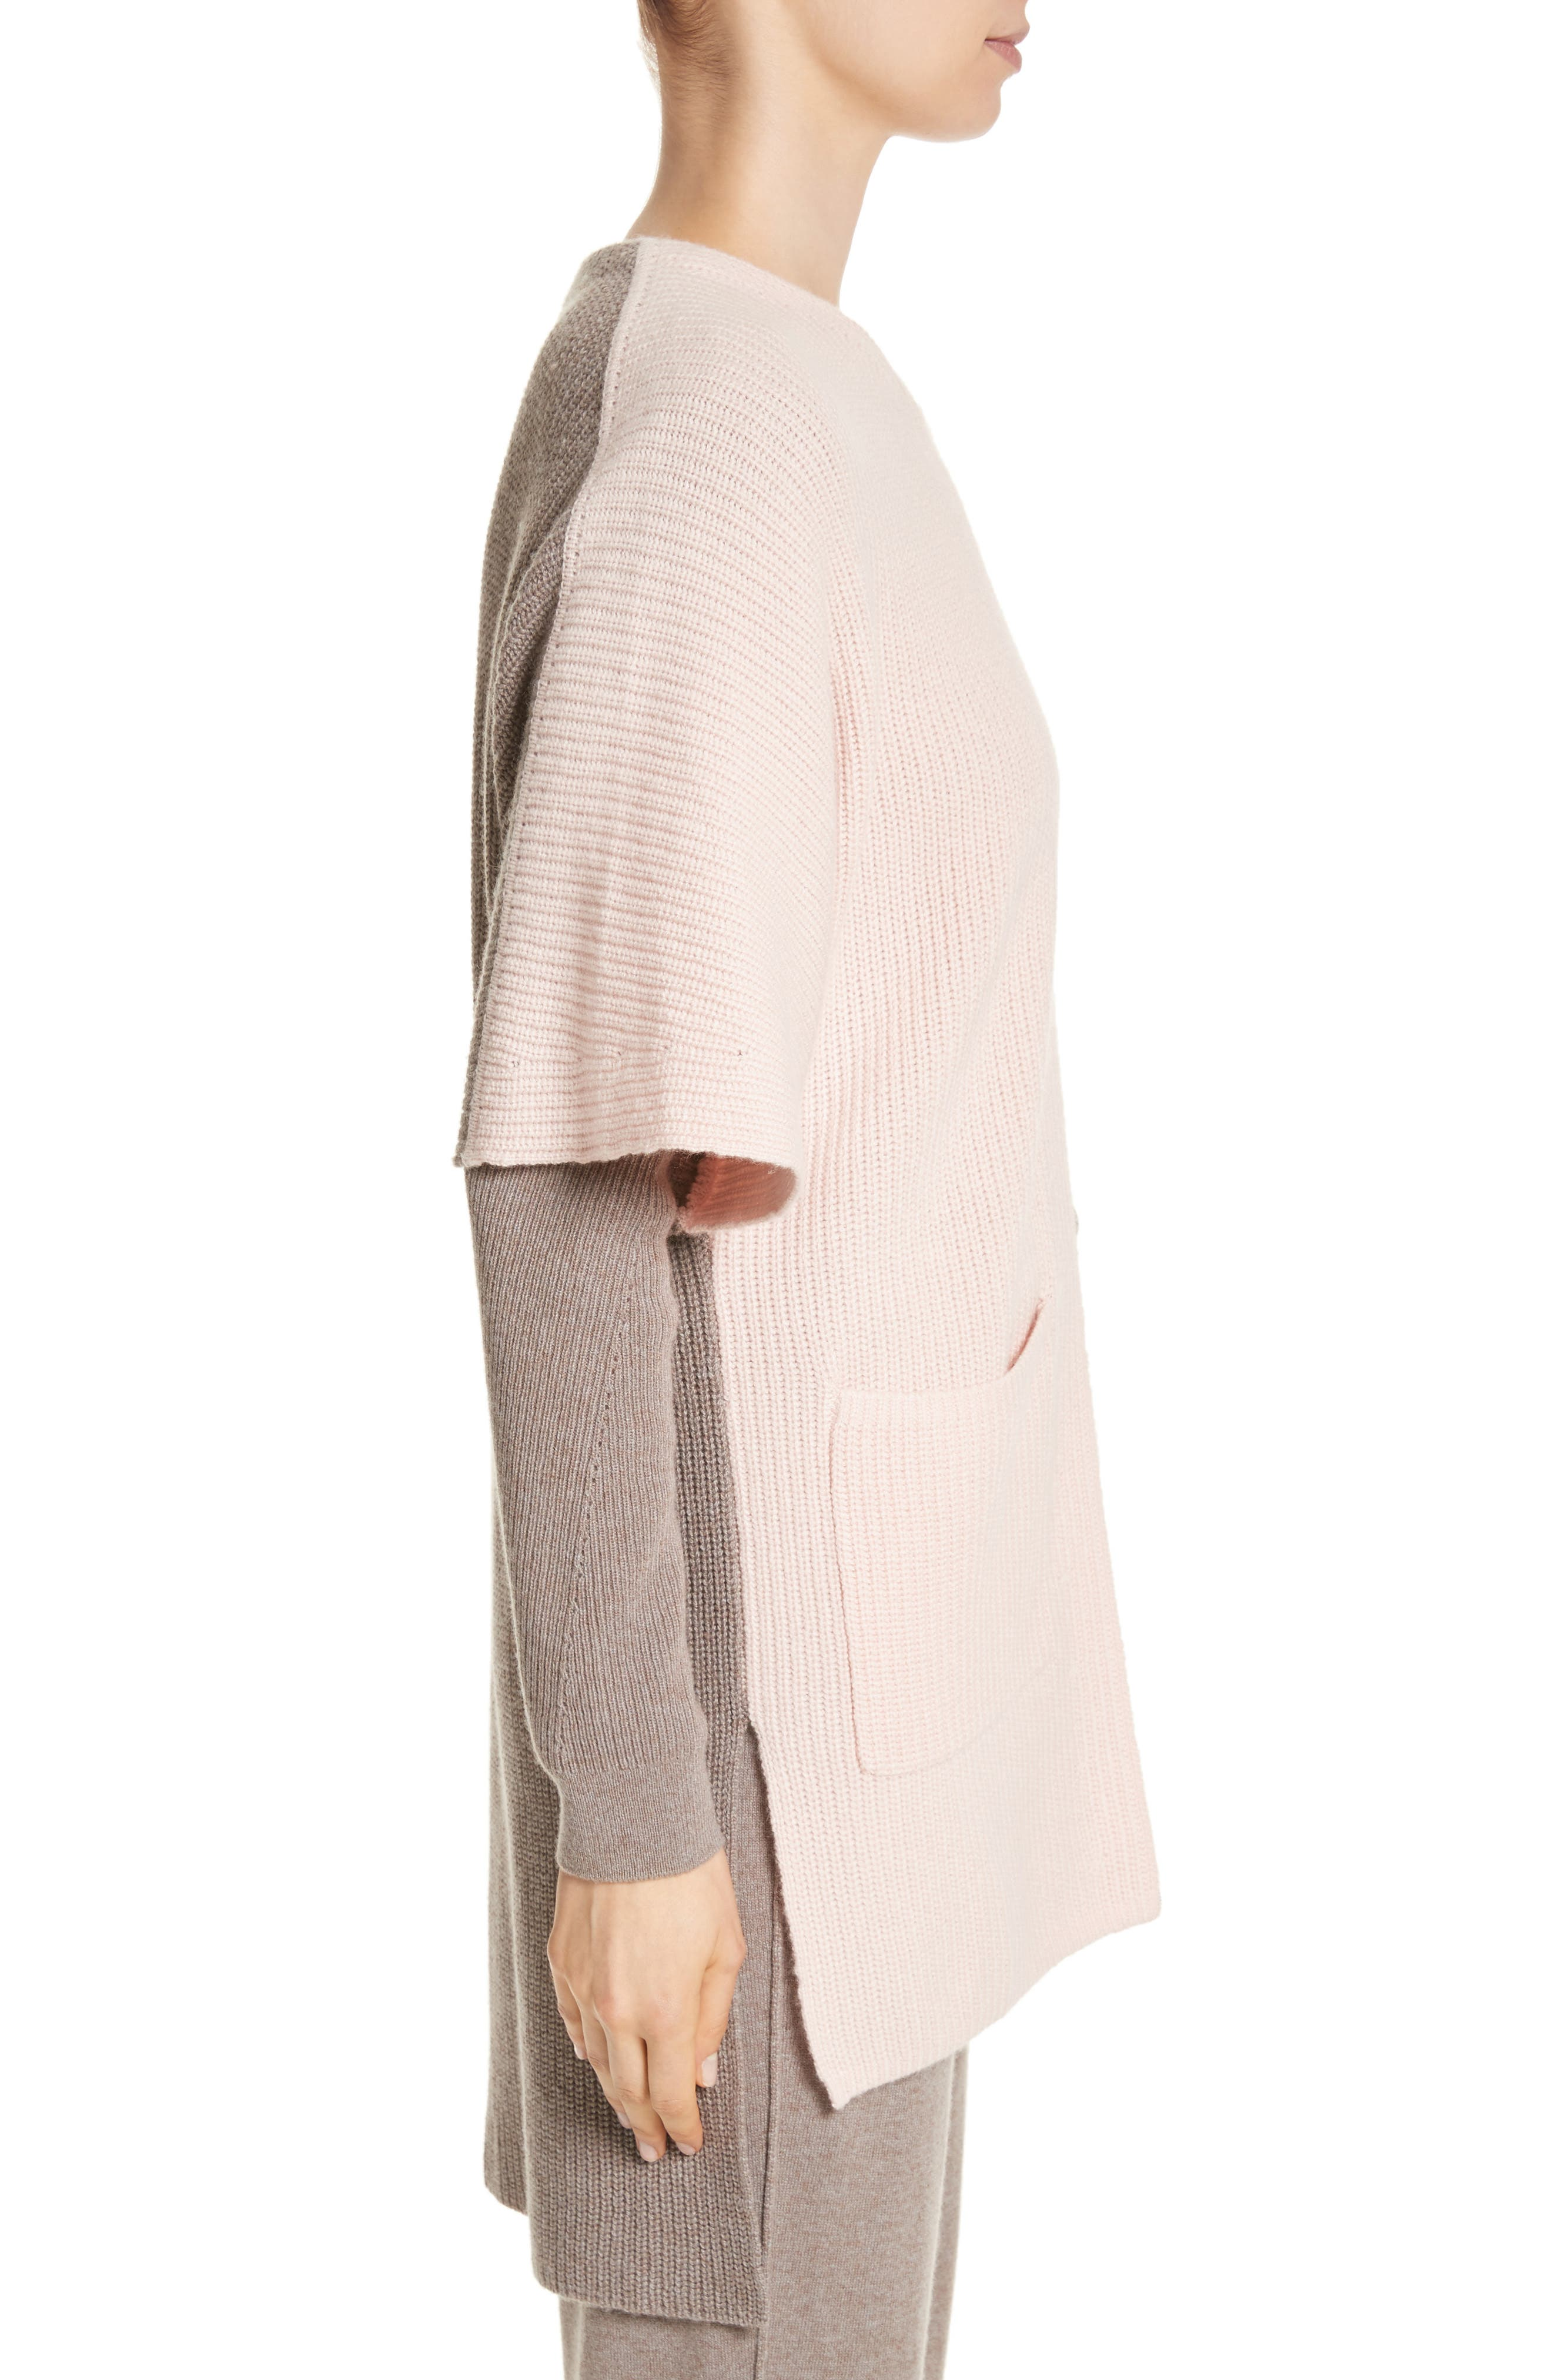 Patch Pocket Cashmere Cardigan,                             Alternate thumbnail 3, color,                             680